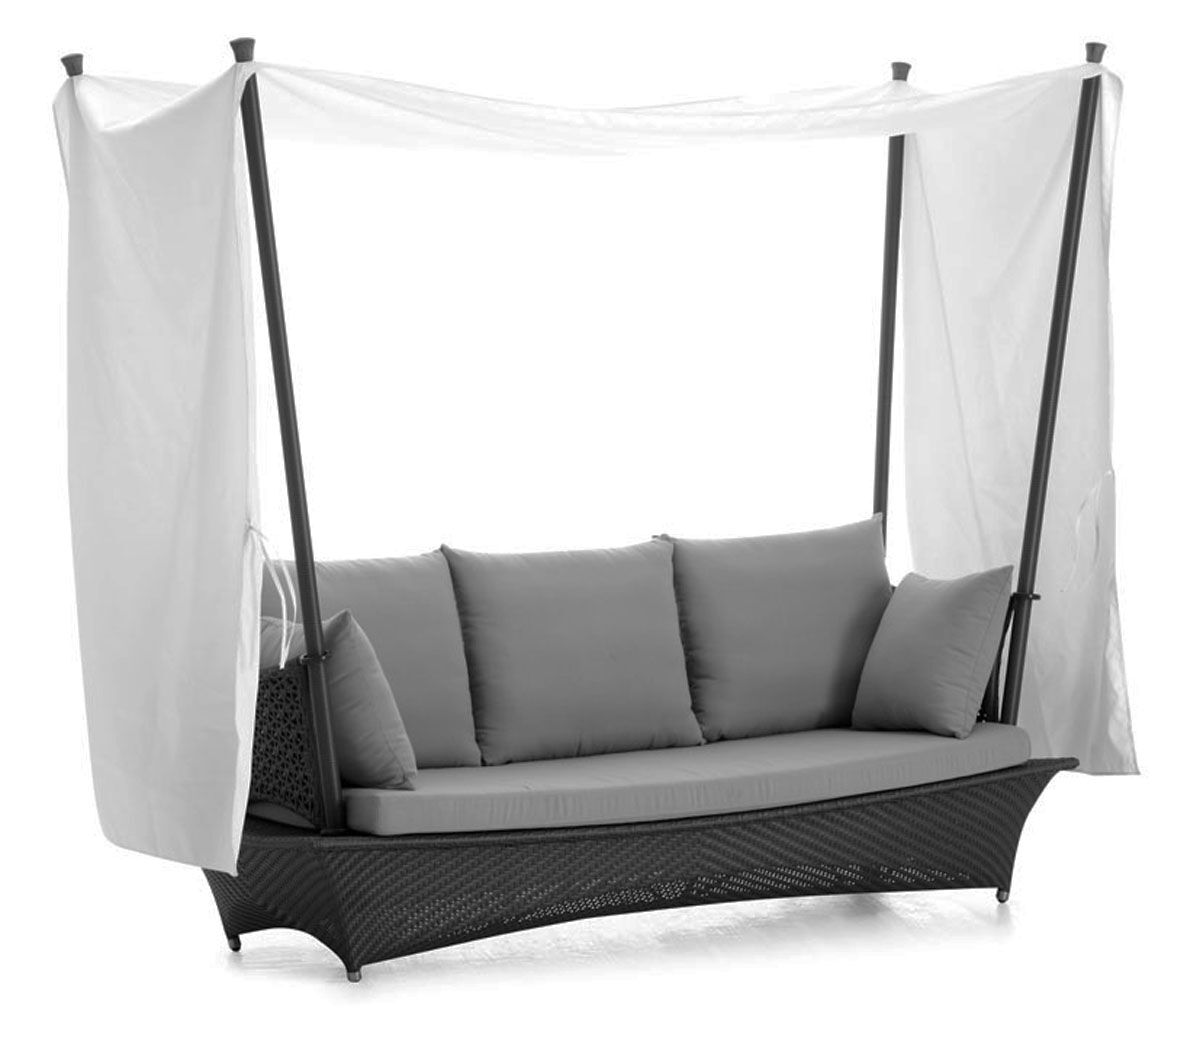 Zen Tent Sofa with Cushions